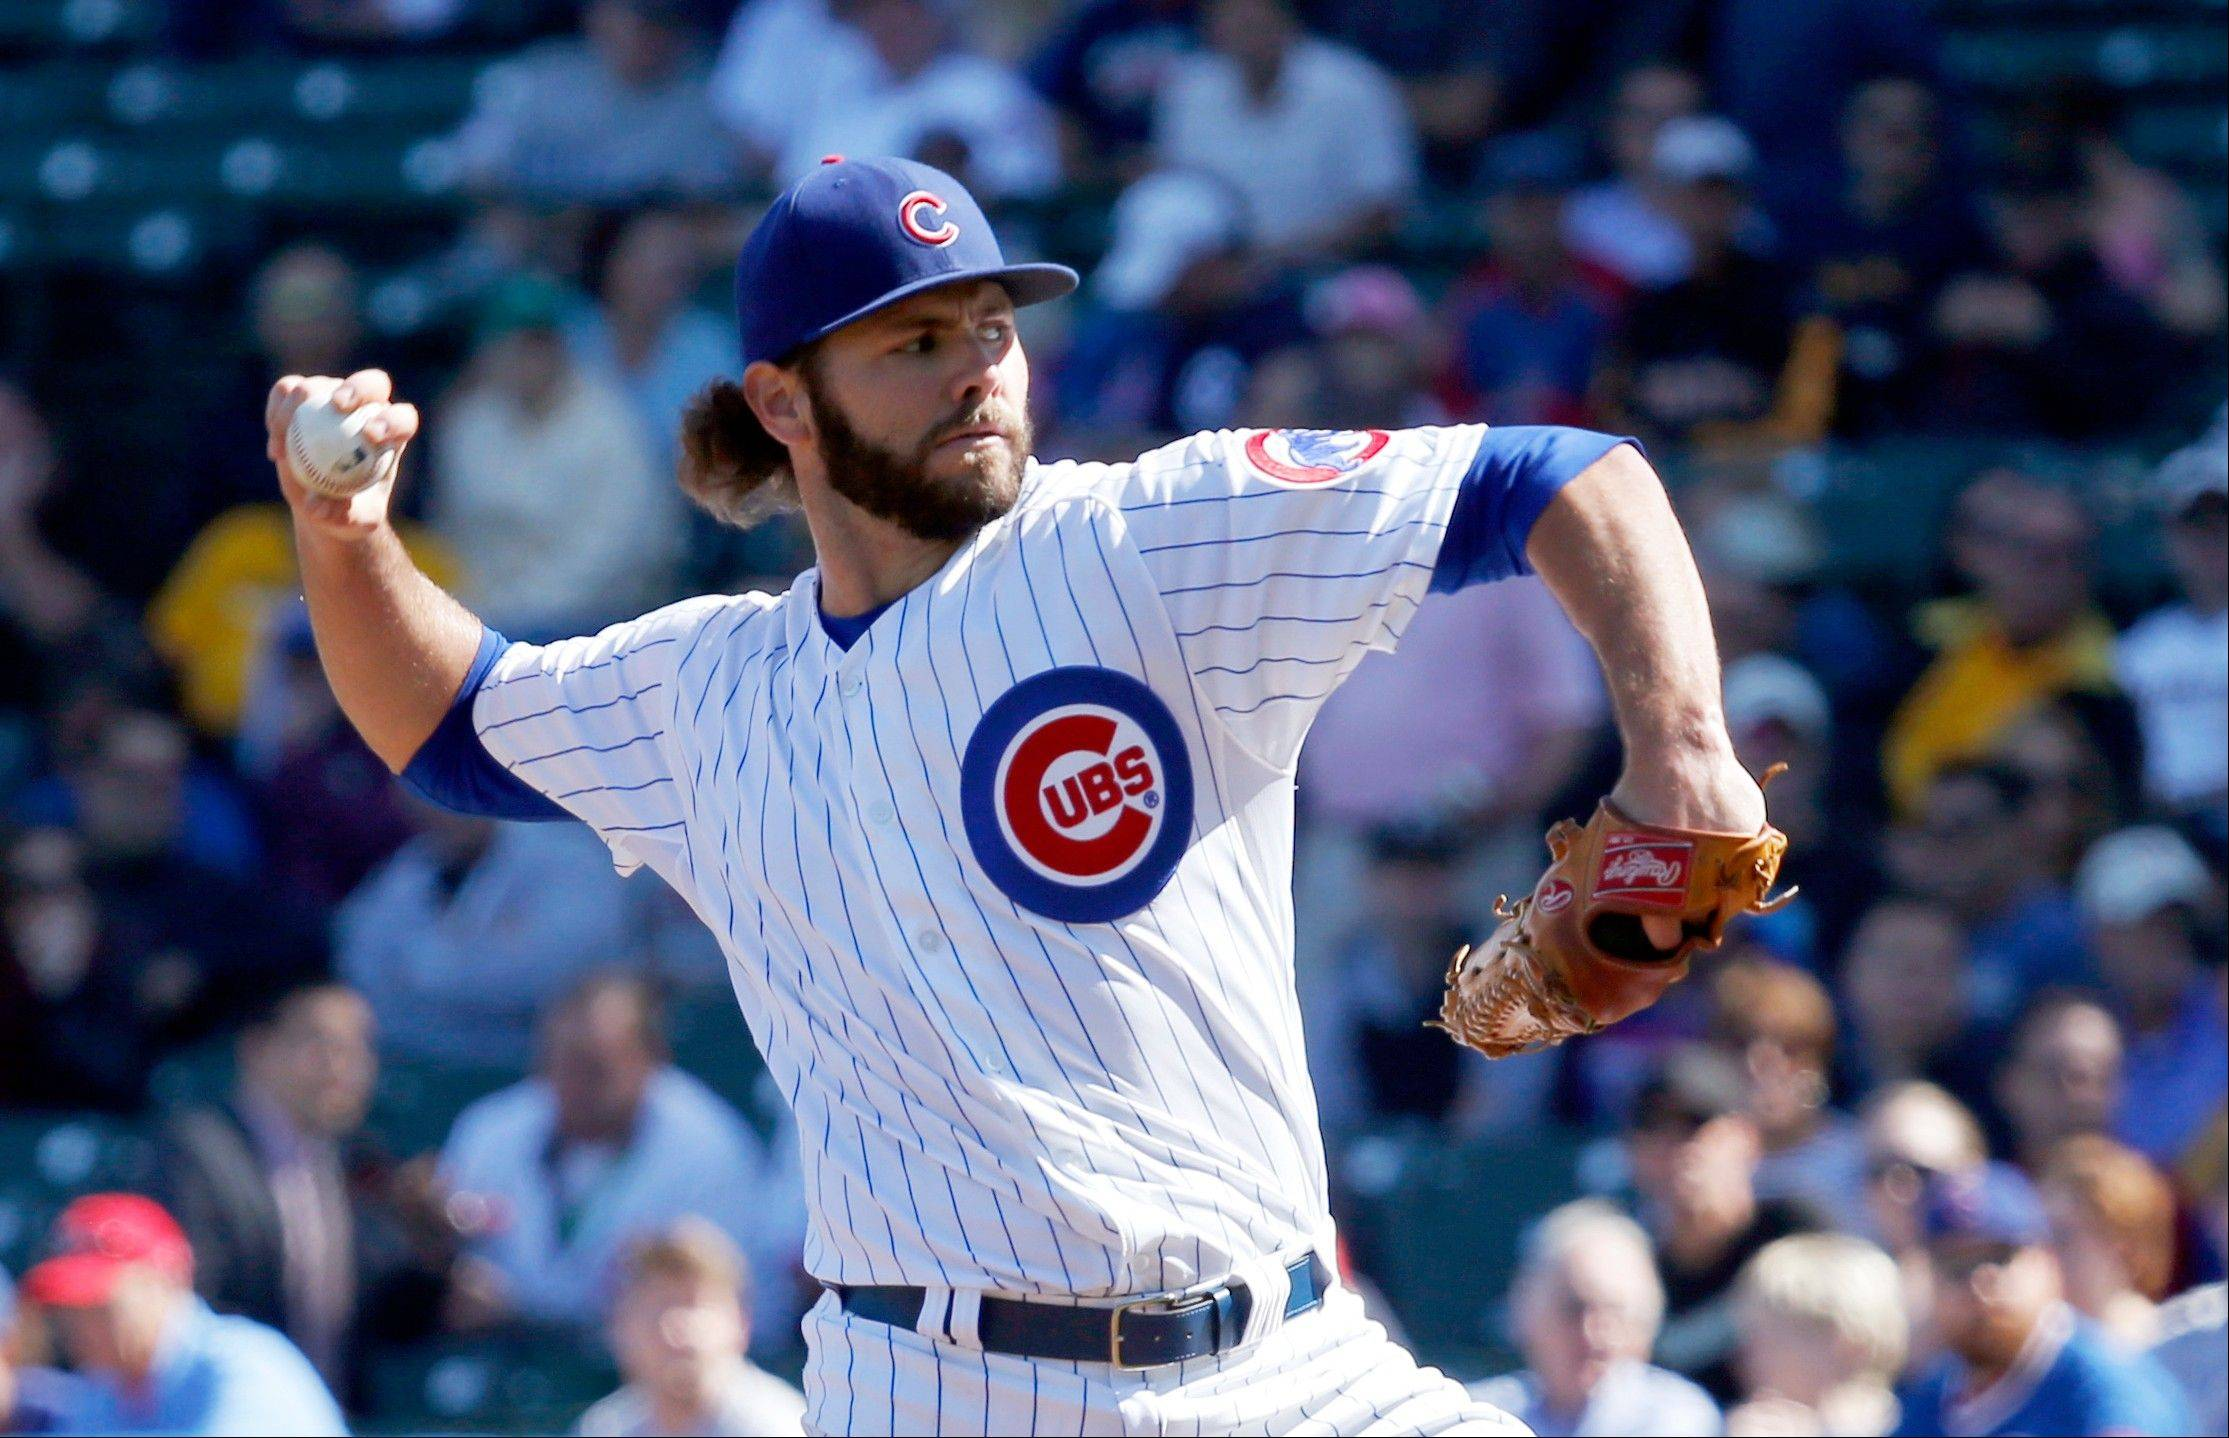 Cubs starting pitcher Jake Arrieta delivers during the first inning of a baseball game against the Pittsburgh Pirates Wednesday in Chicago.